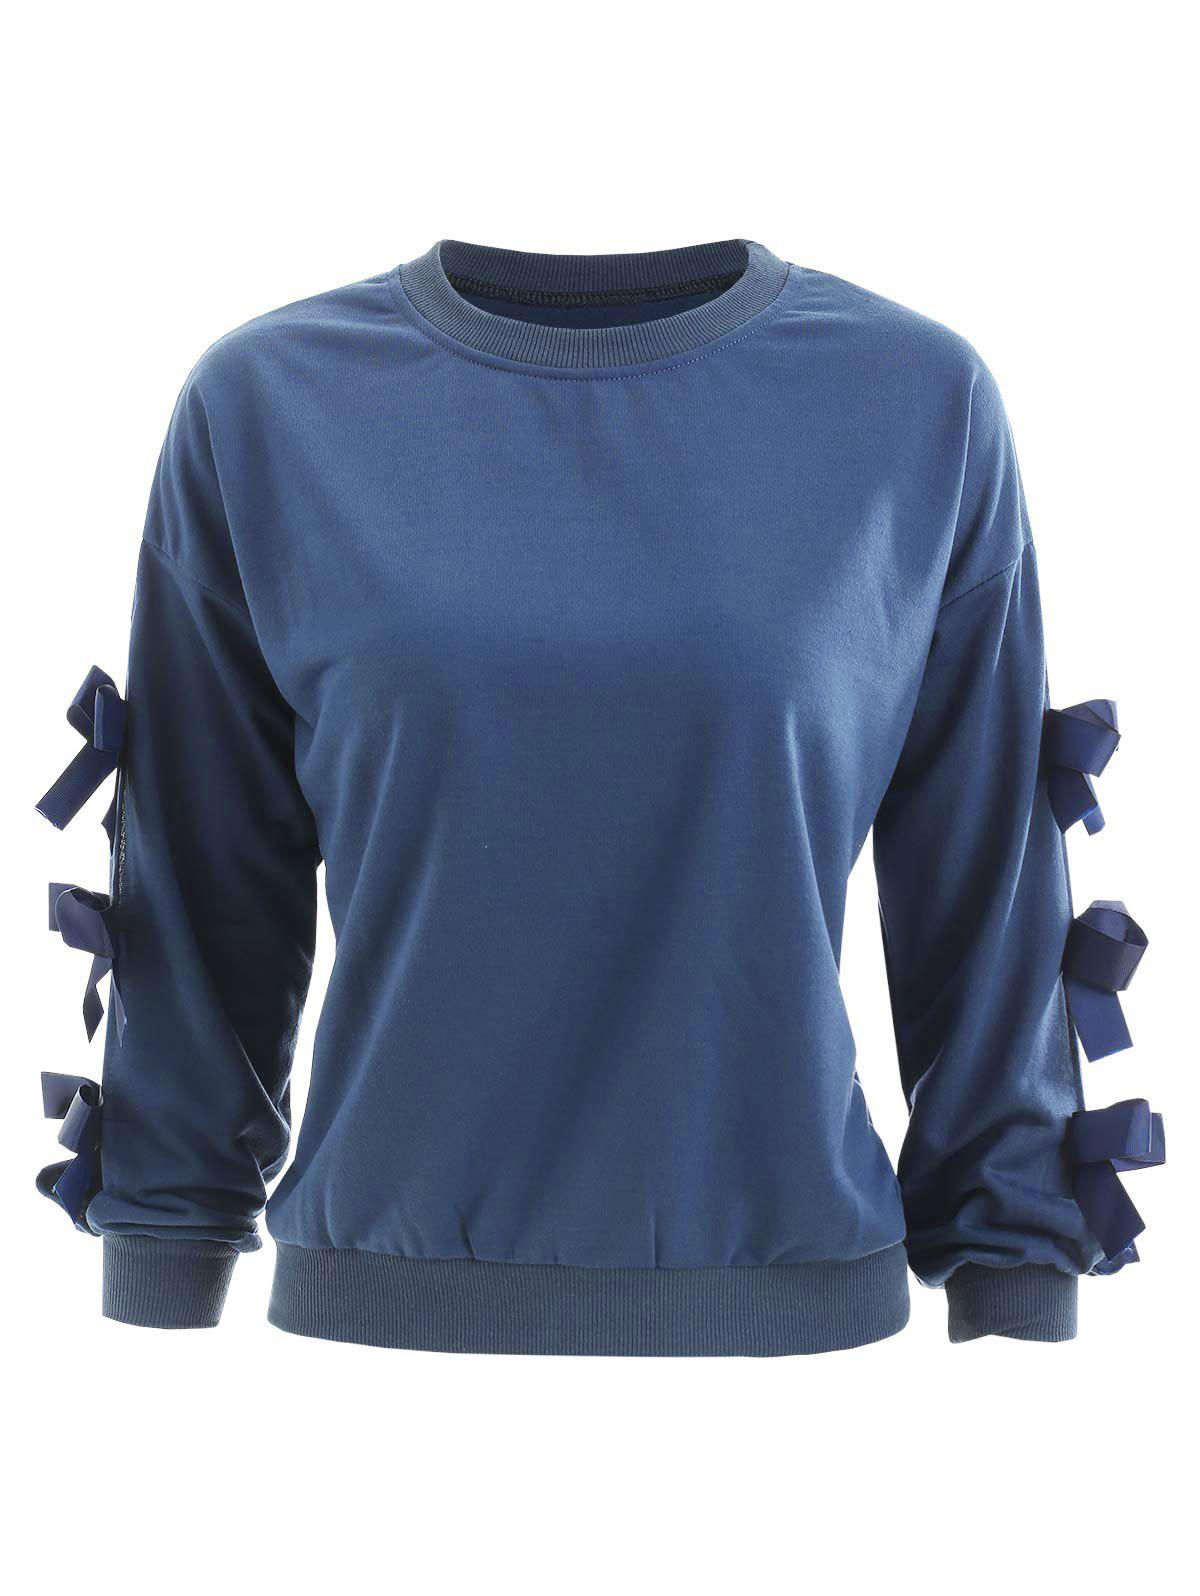 Cut Out Sleeve Sweatshirt with Bowknots - PEACOCK BLUE S